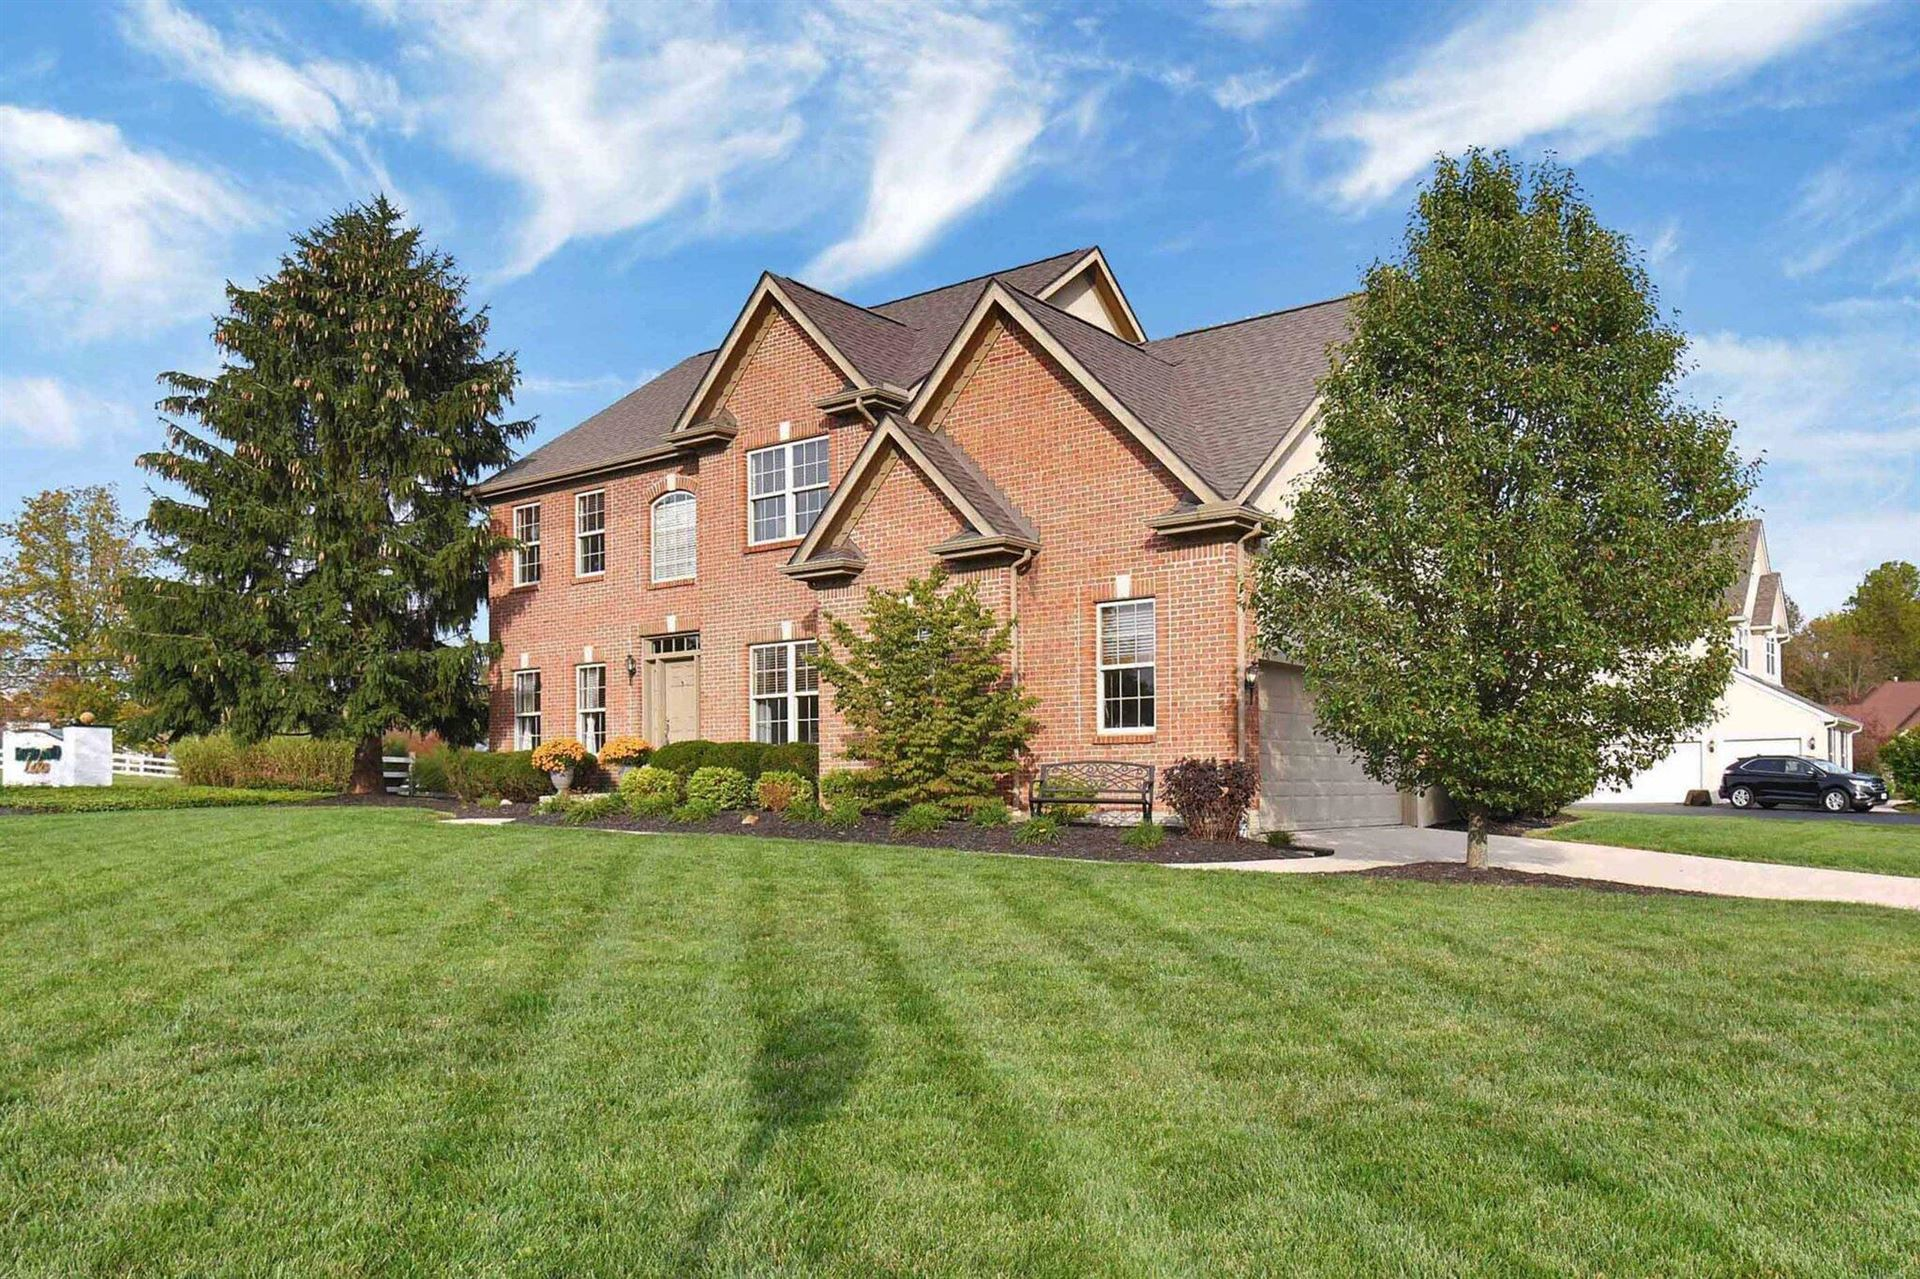 Photo of 5205 Leydorf Lane, Westerville, OH 43082 (MLS # 221040535)